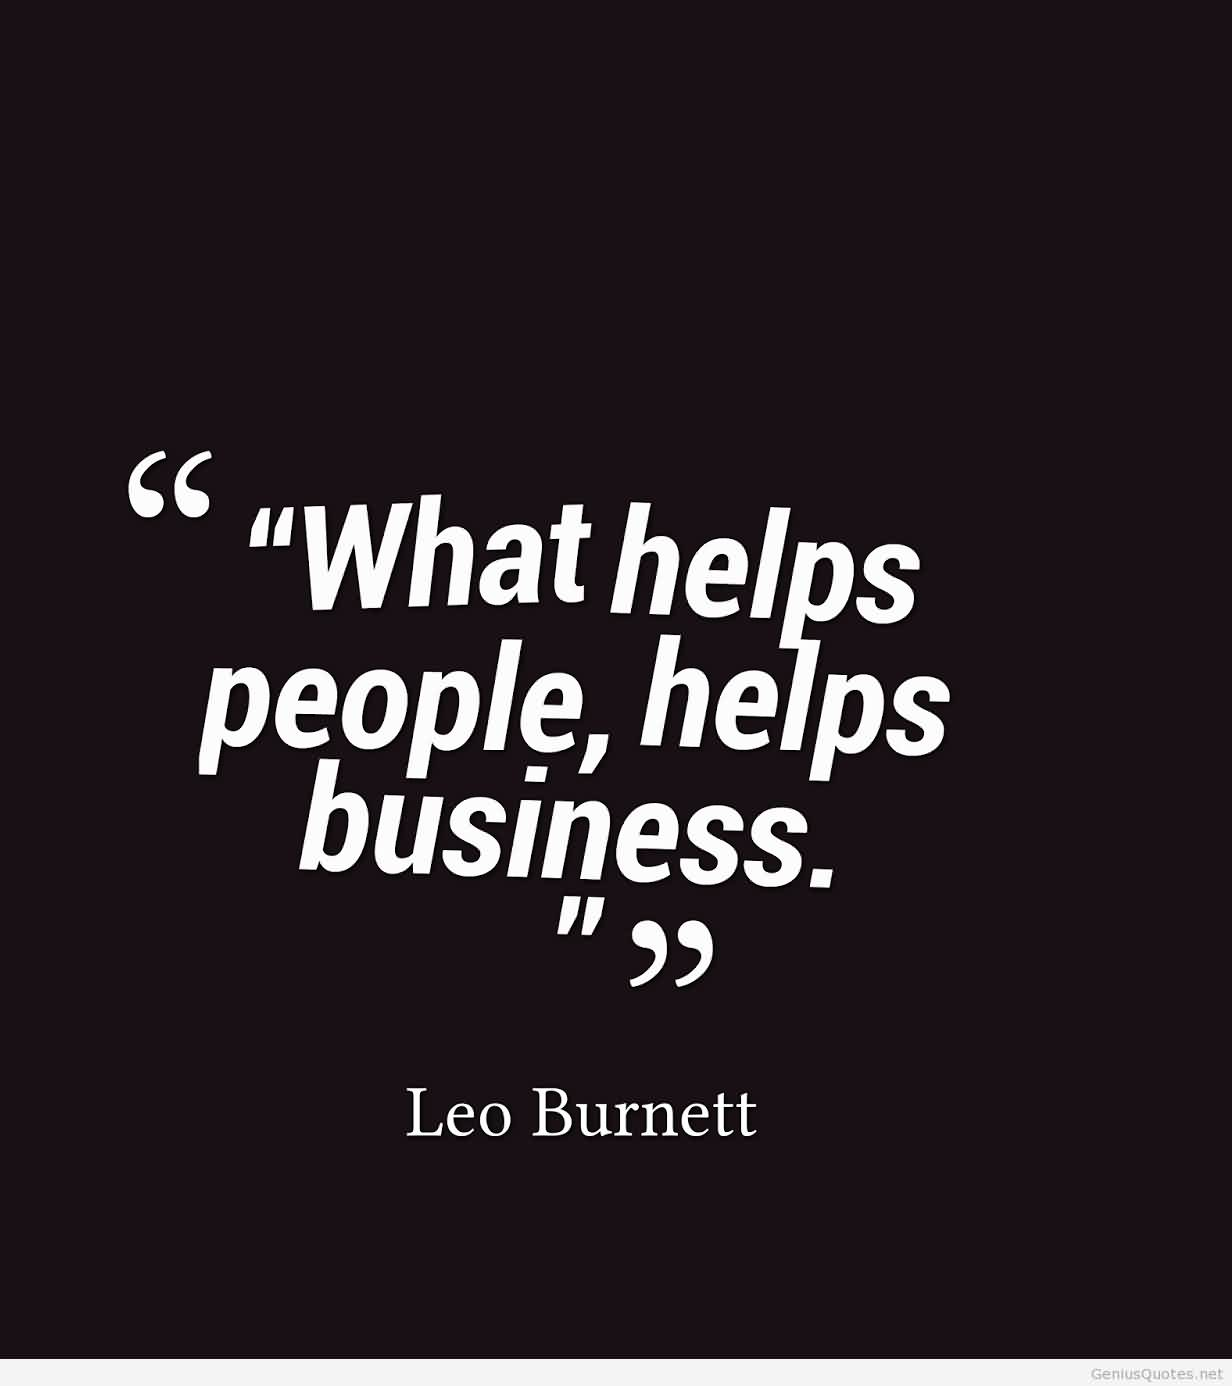 Quotes For Cover Photo: Business Quotes Pictures And Business Quotes Images With